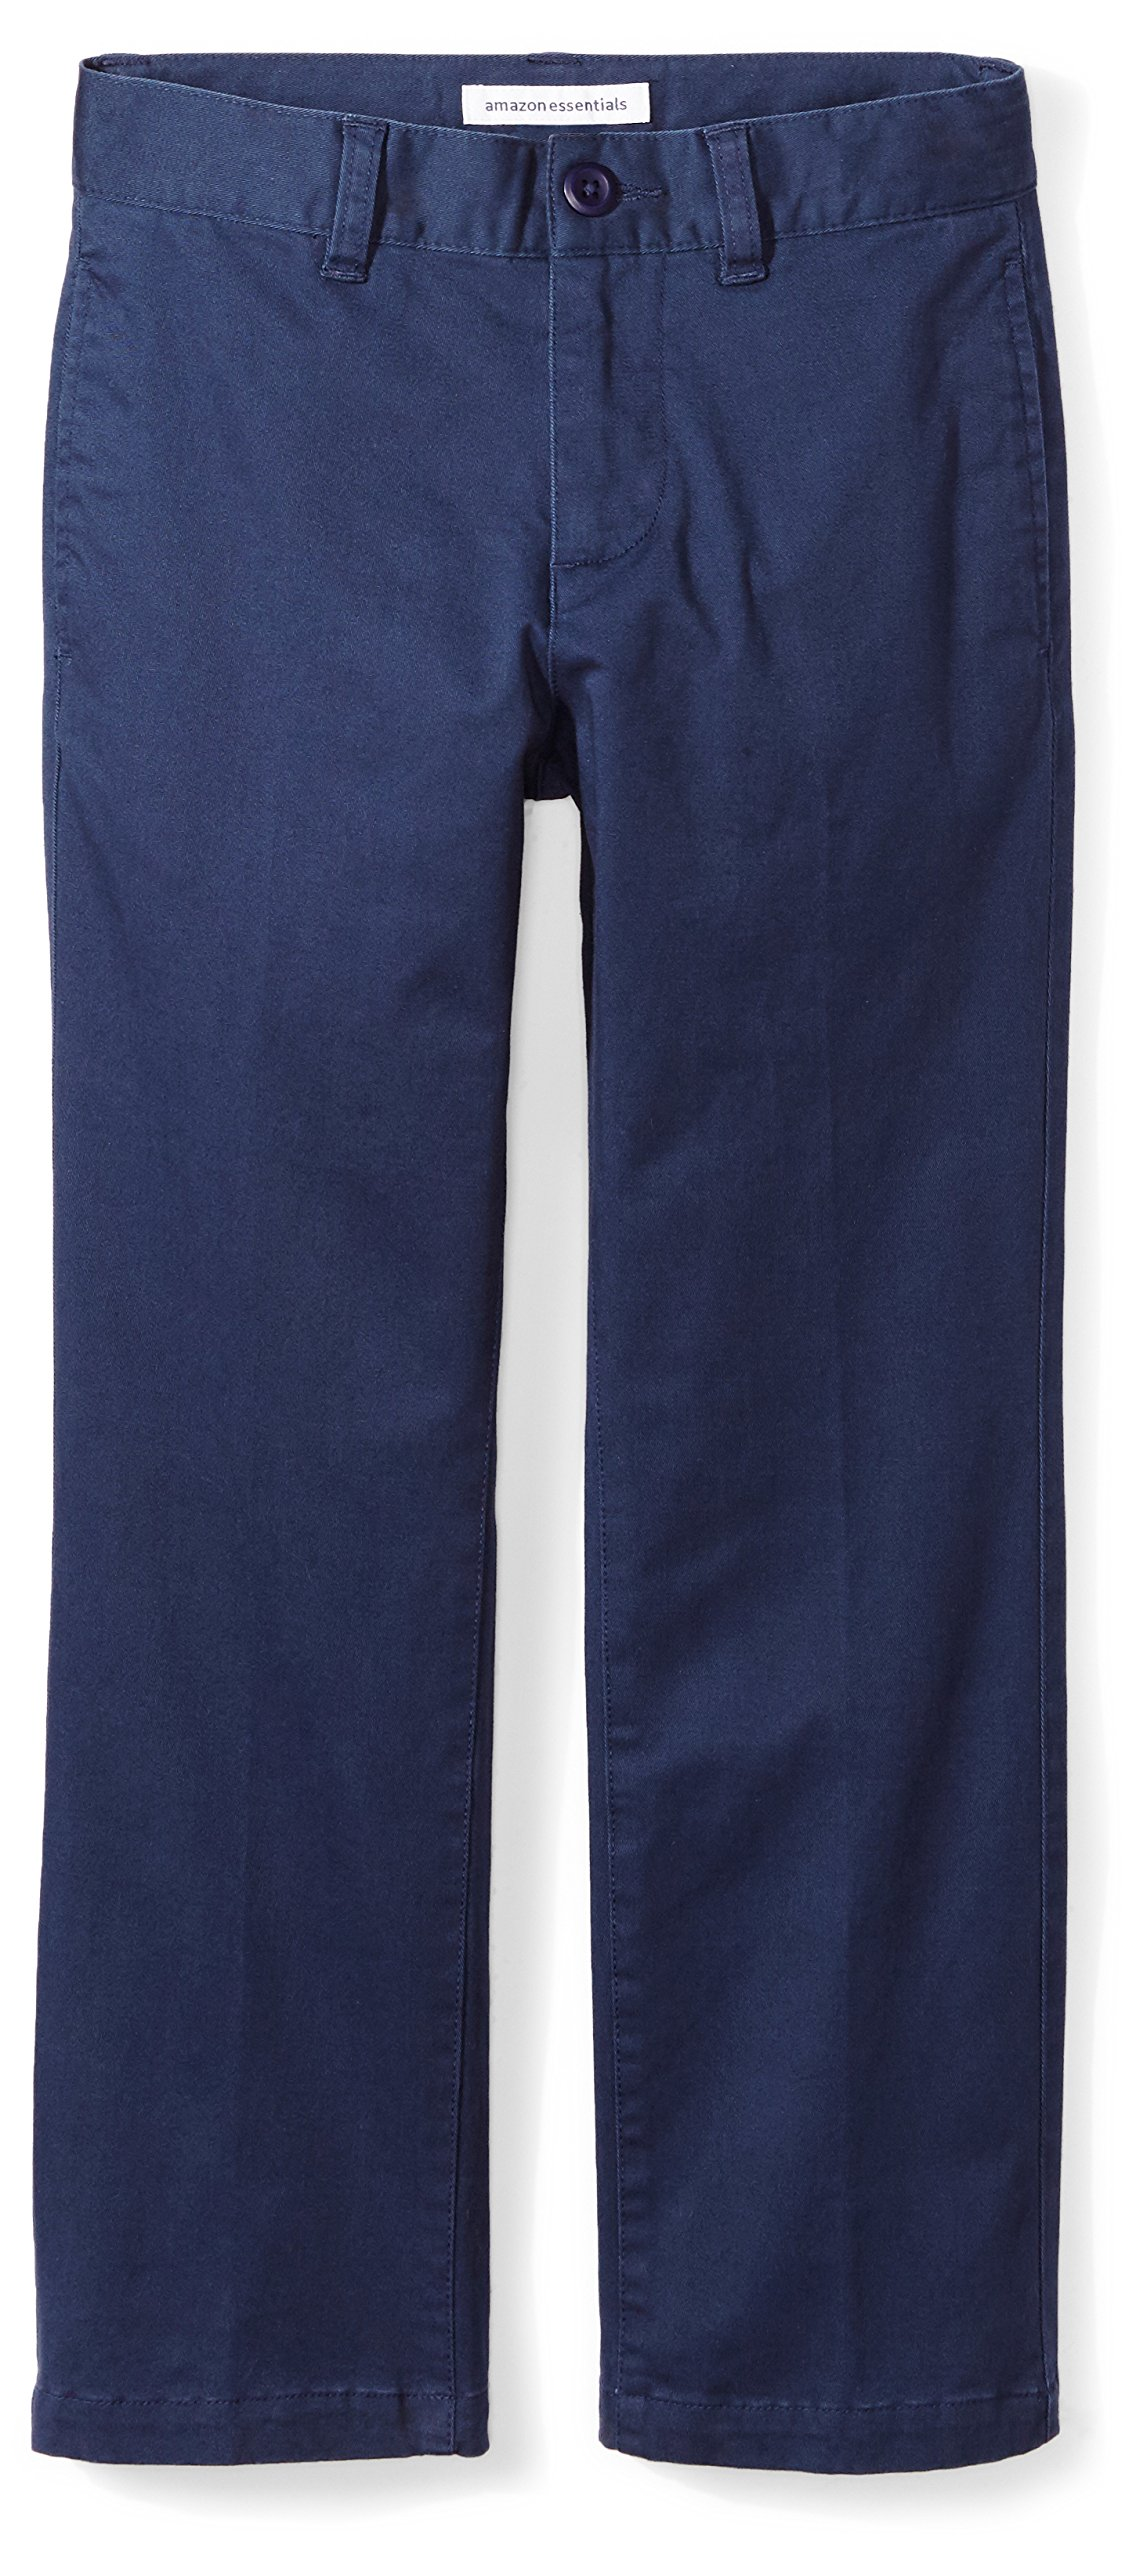 Amazon Essentials Boys' Straight Leg Flat Front Uniform Chino Pant, Washed Navy,12